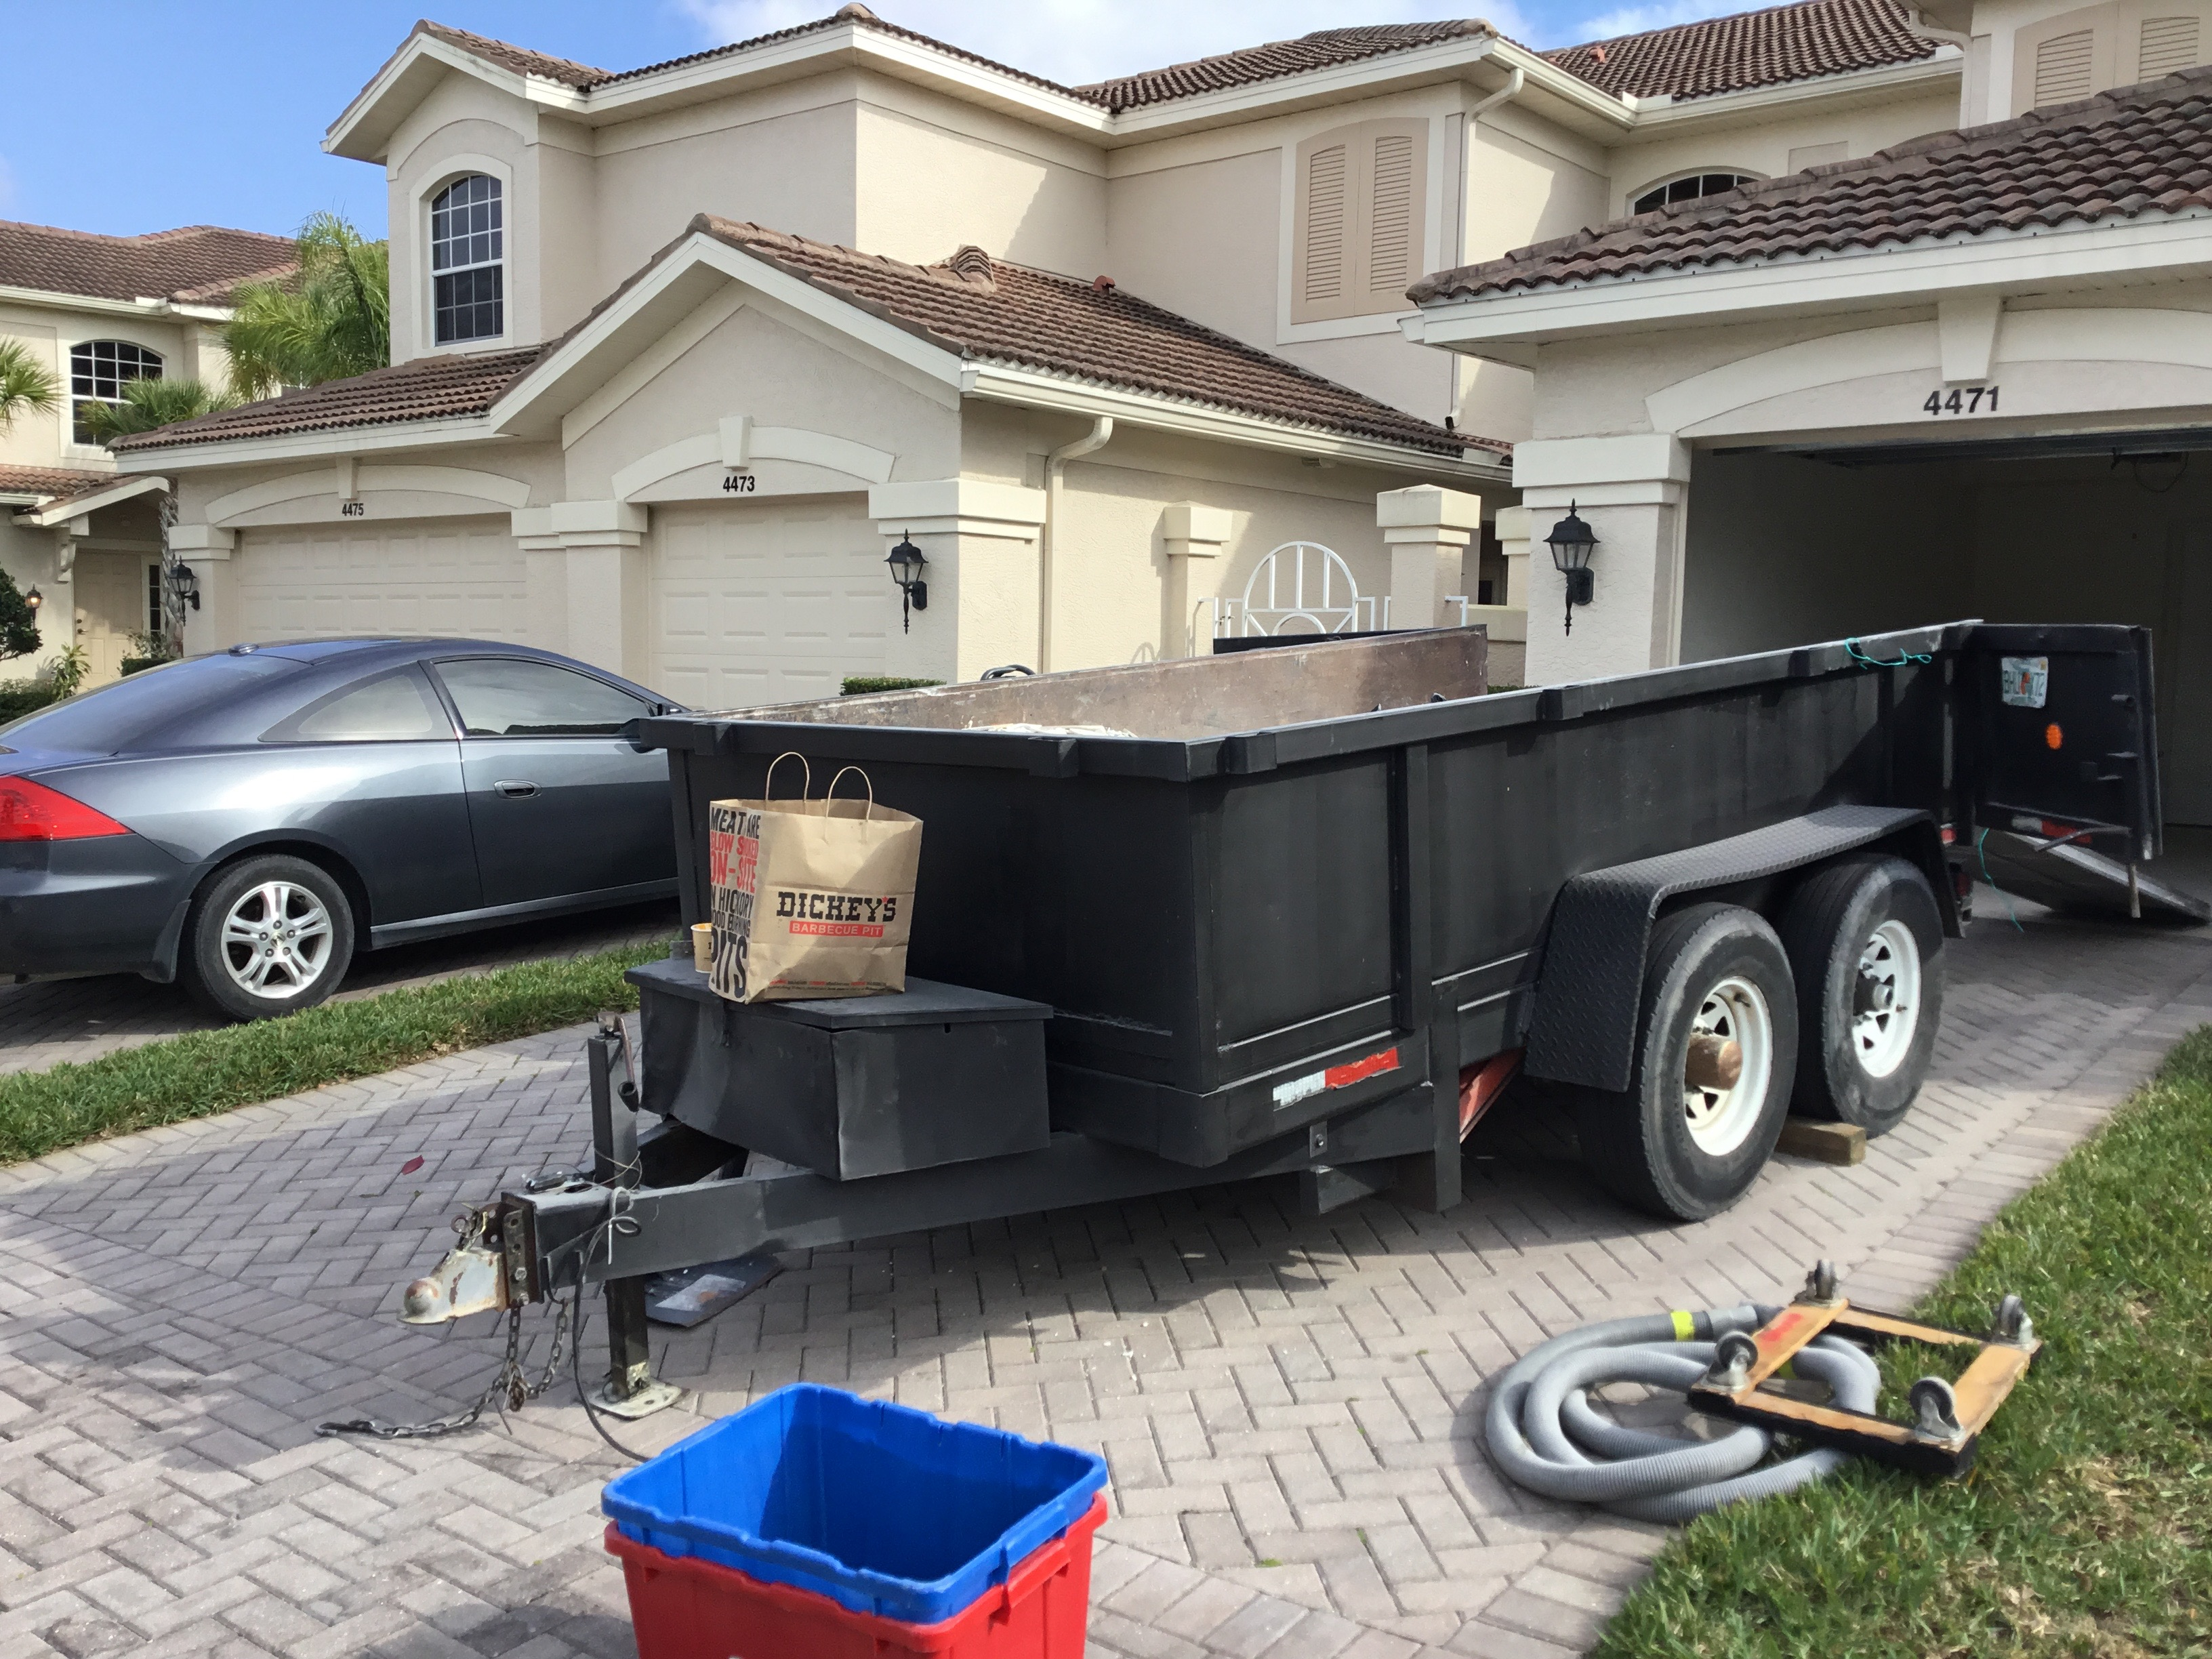 Image of Speedy Floor Removal dump trailers parked outside a North Florida home